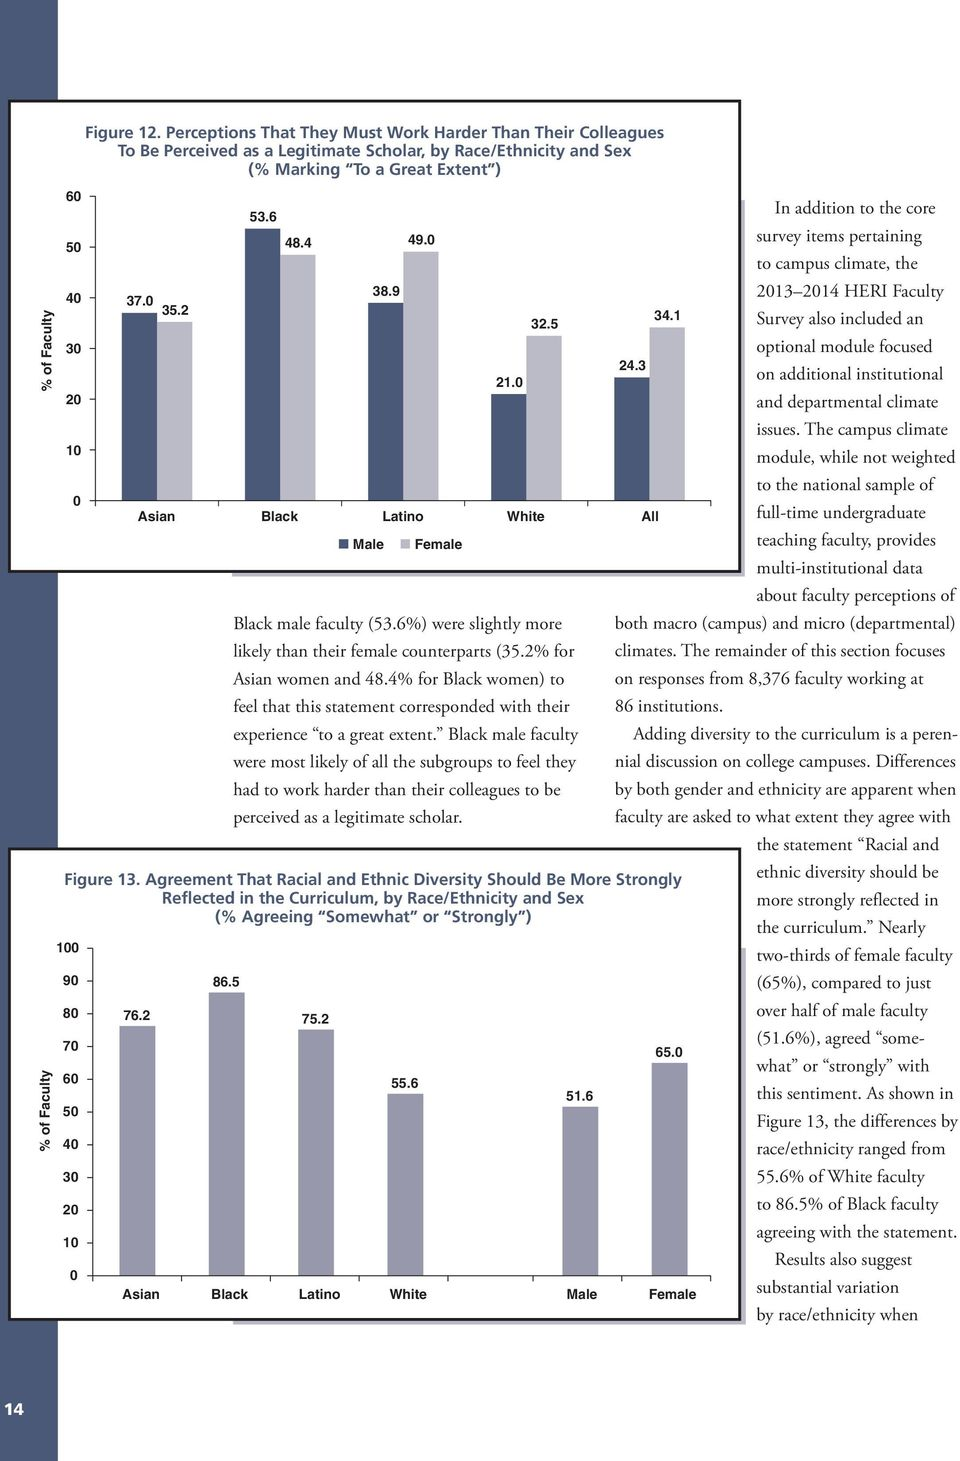 0 Black male faculty (53.6%) were slightly more likely than their female counterparts (35.2% for Asian women and 48.